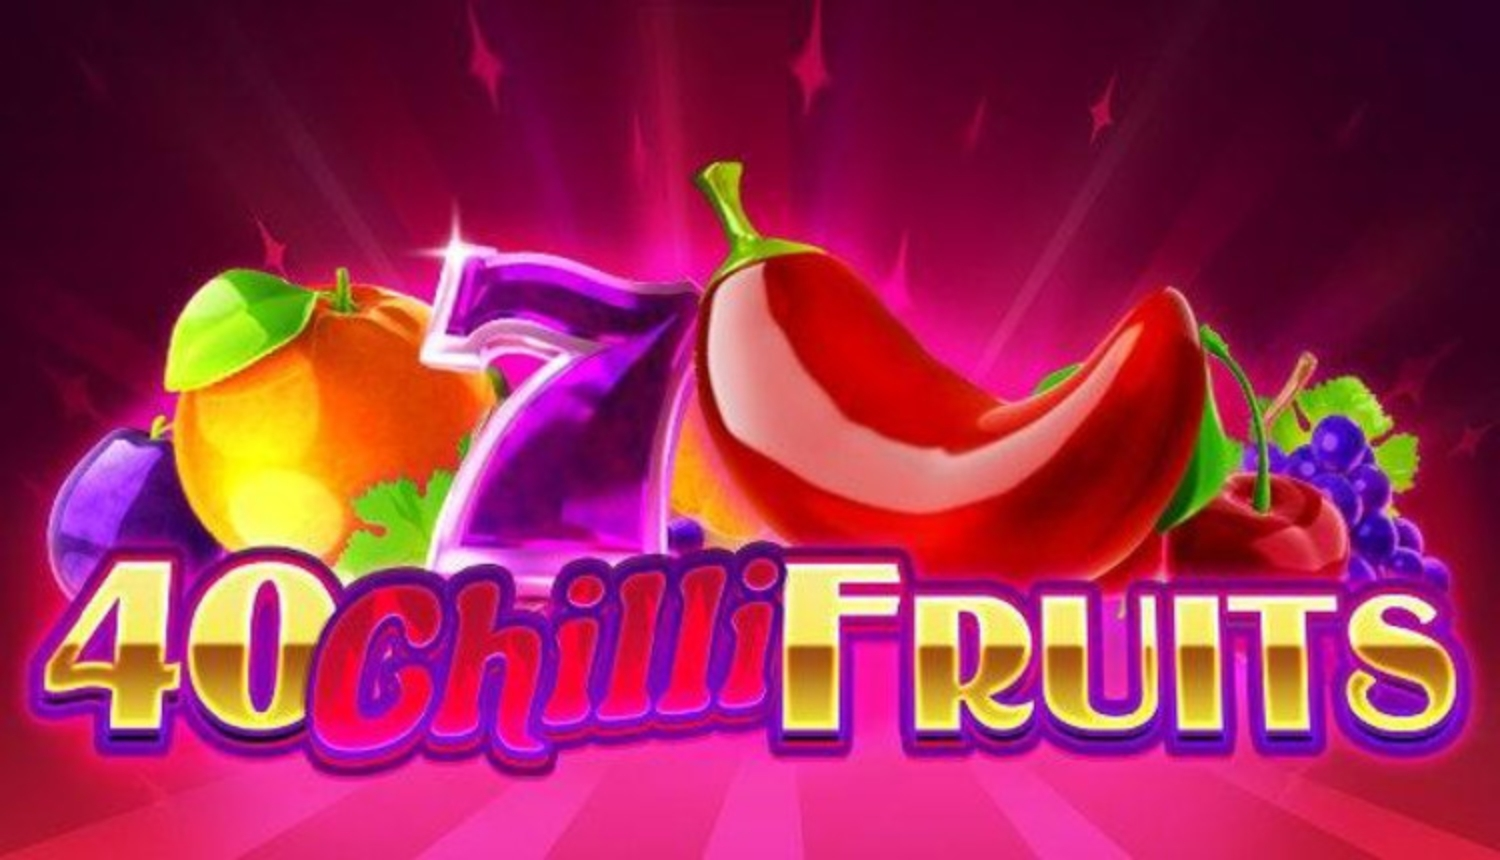 The 40 Chilli Fruits (Gamzix) Online Slot Demo Game by Gamzix